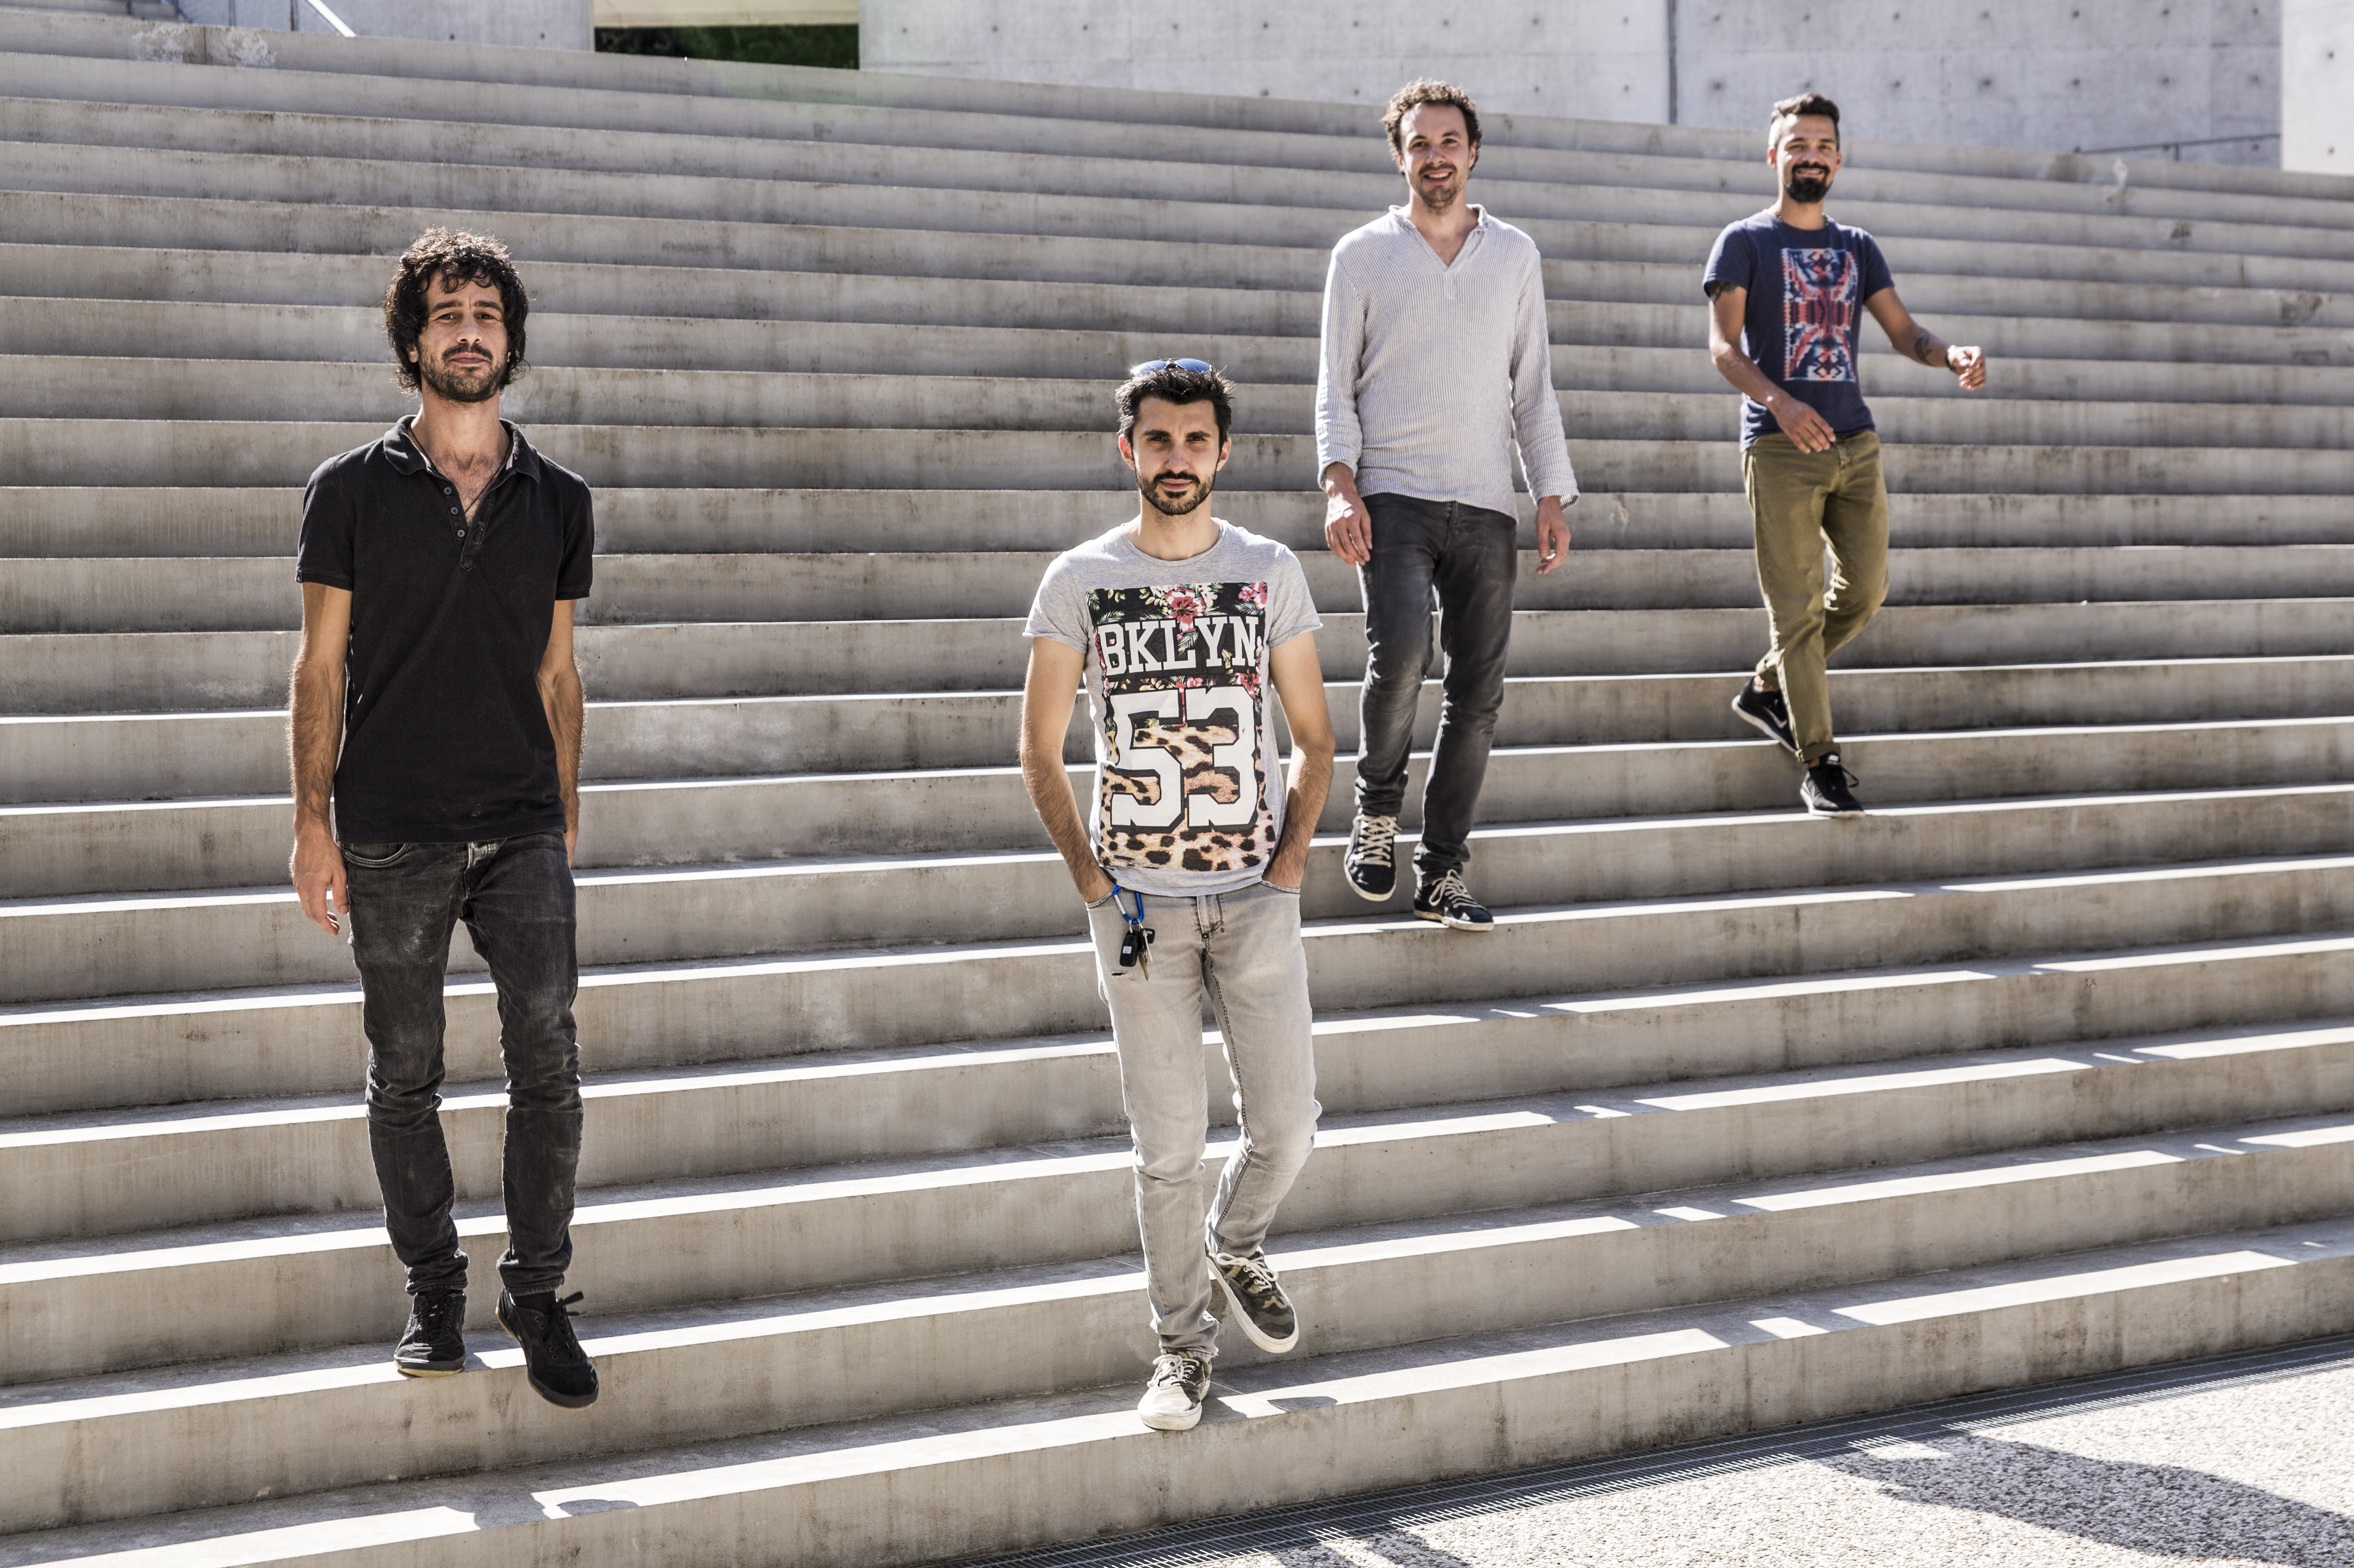 Fabrica Musica in concert with Alaa Arsheed